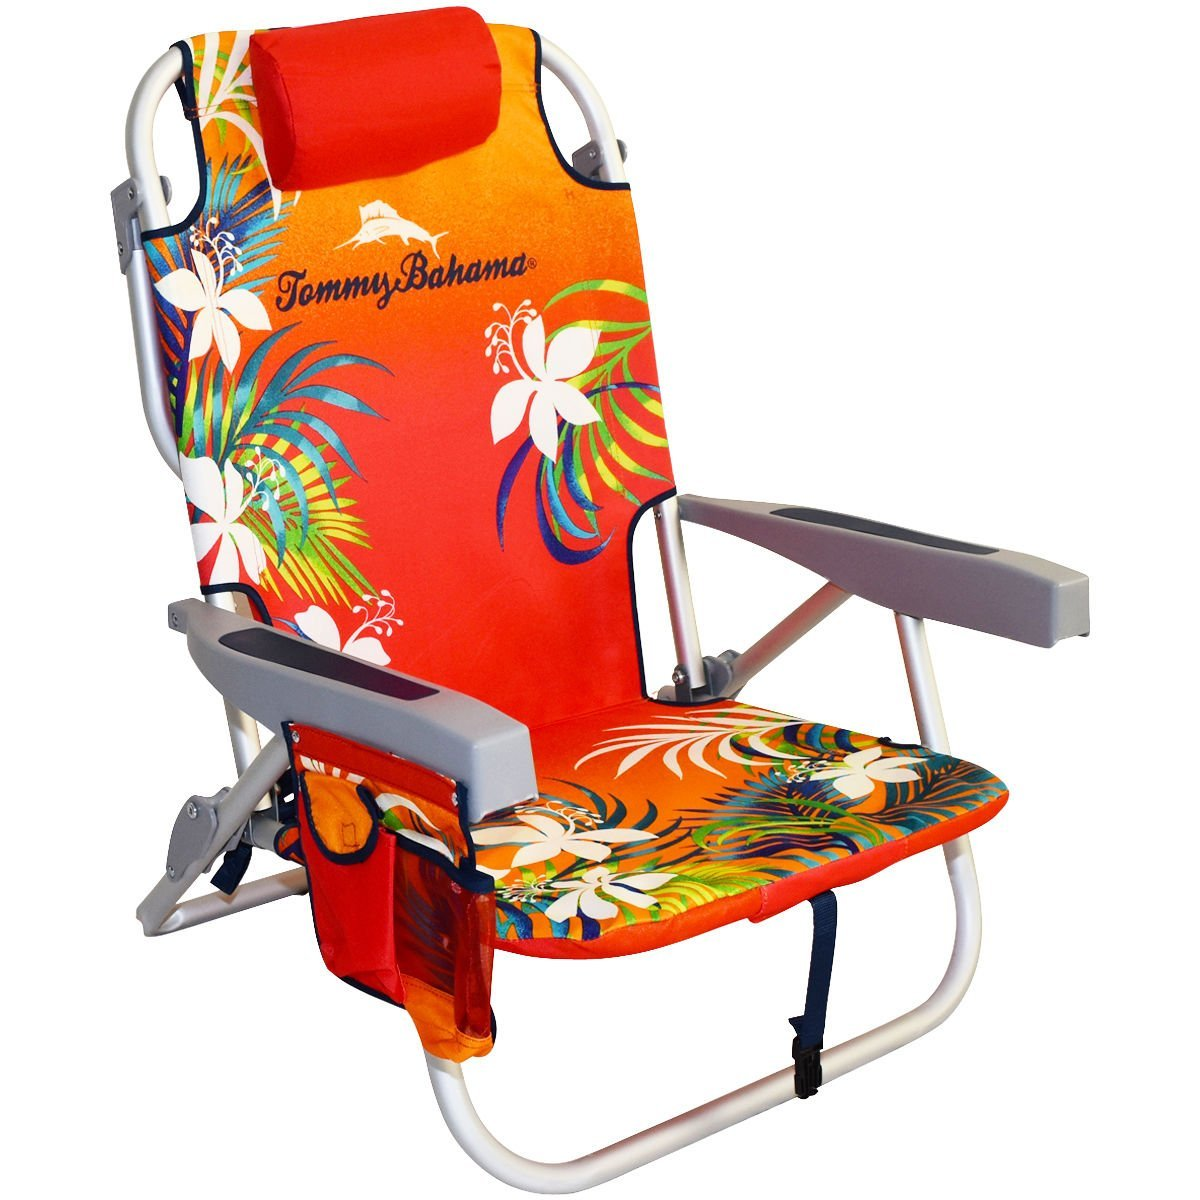 tommy bahama cooler chair beige dining room covers review of the top 8 best camping chairs in 2018 sorted